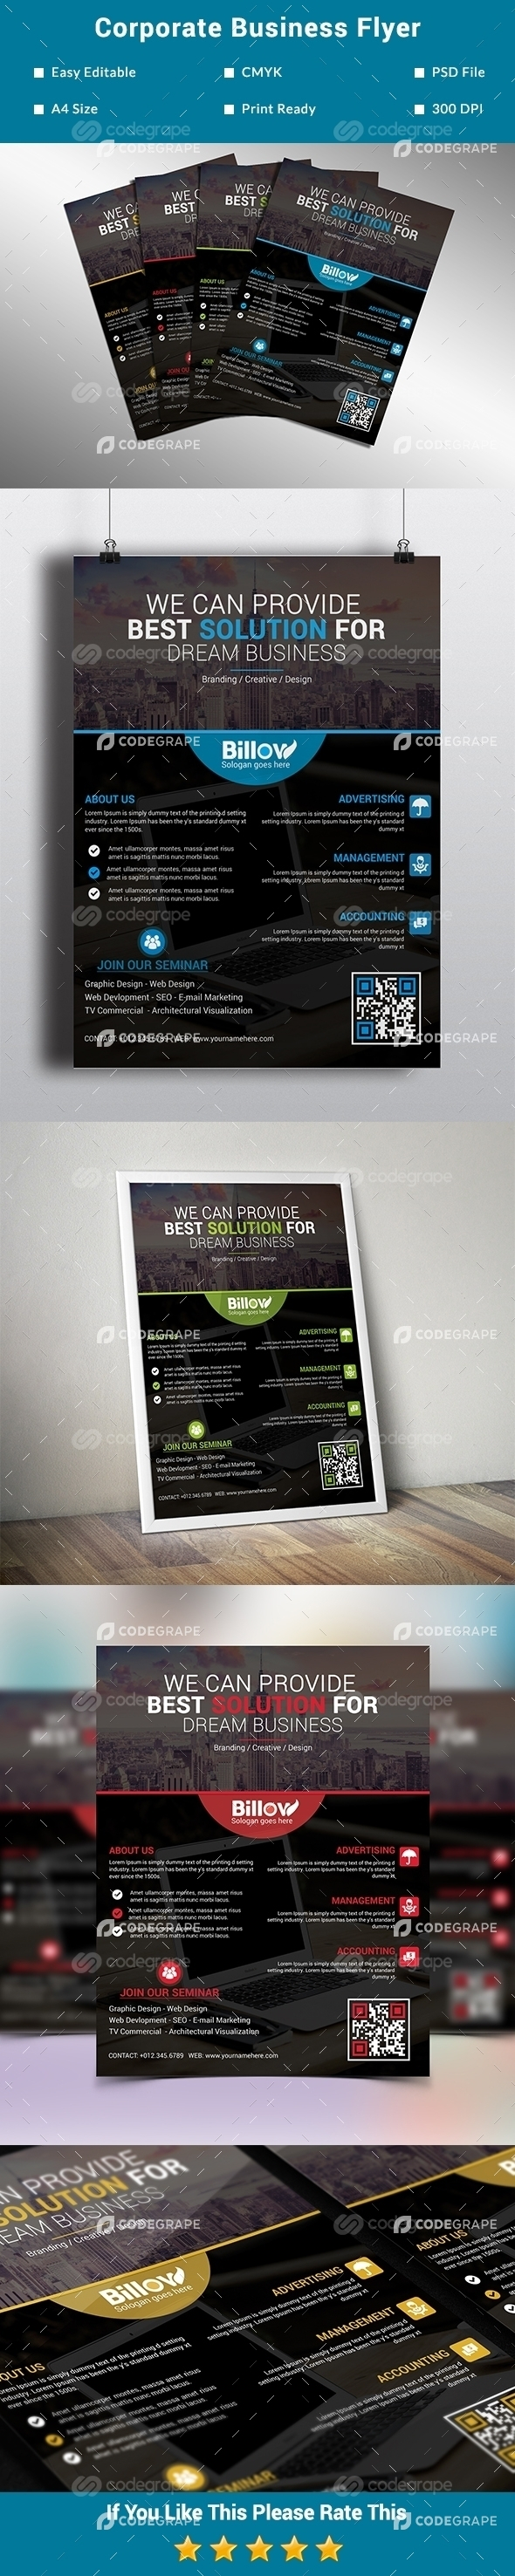 Corporate Business Flyer Vol. 1